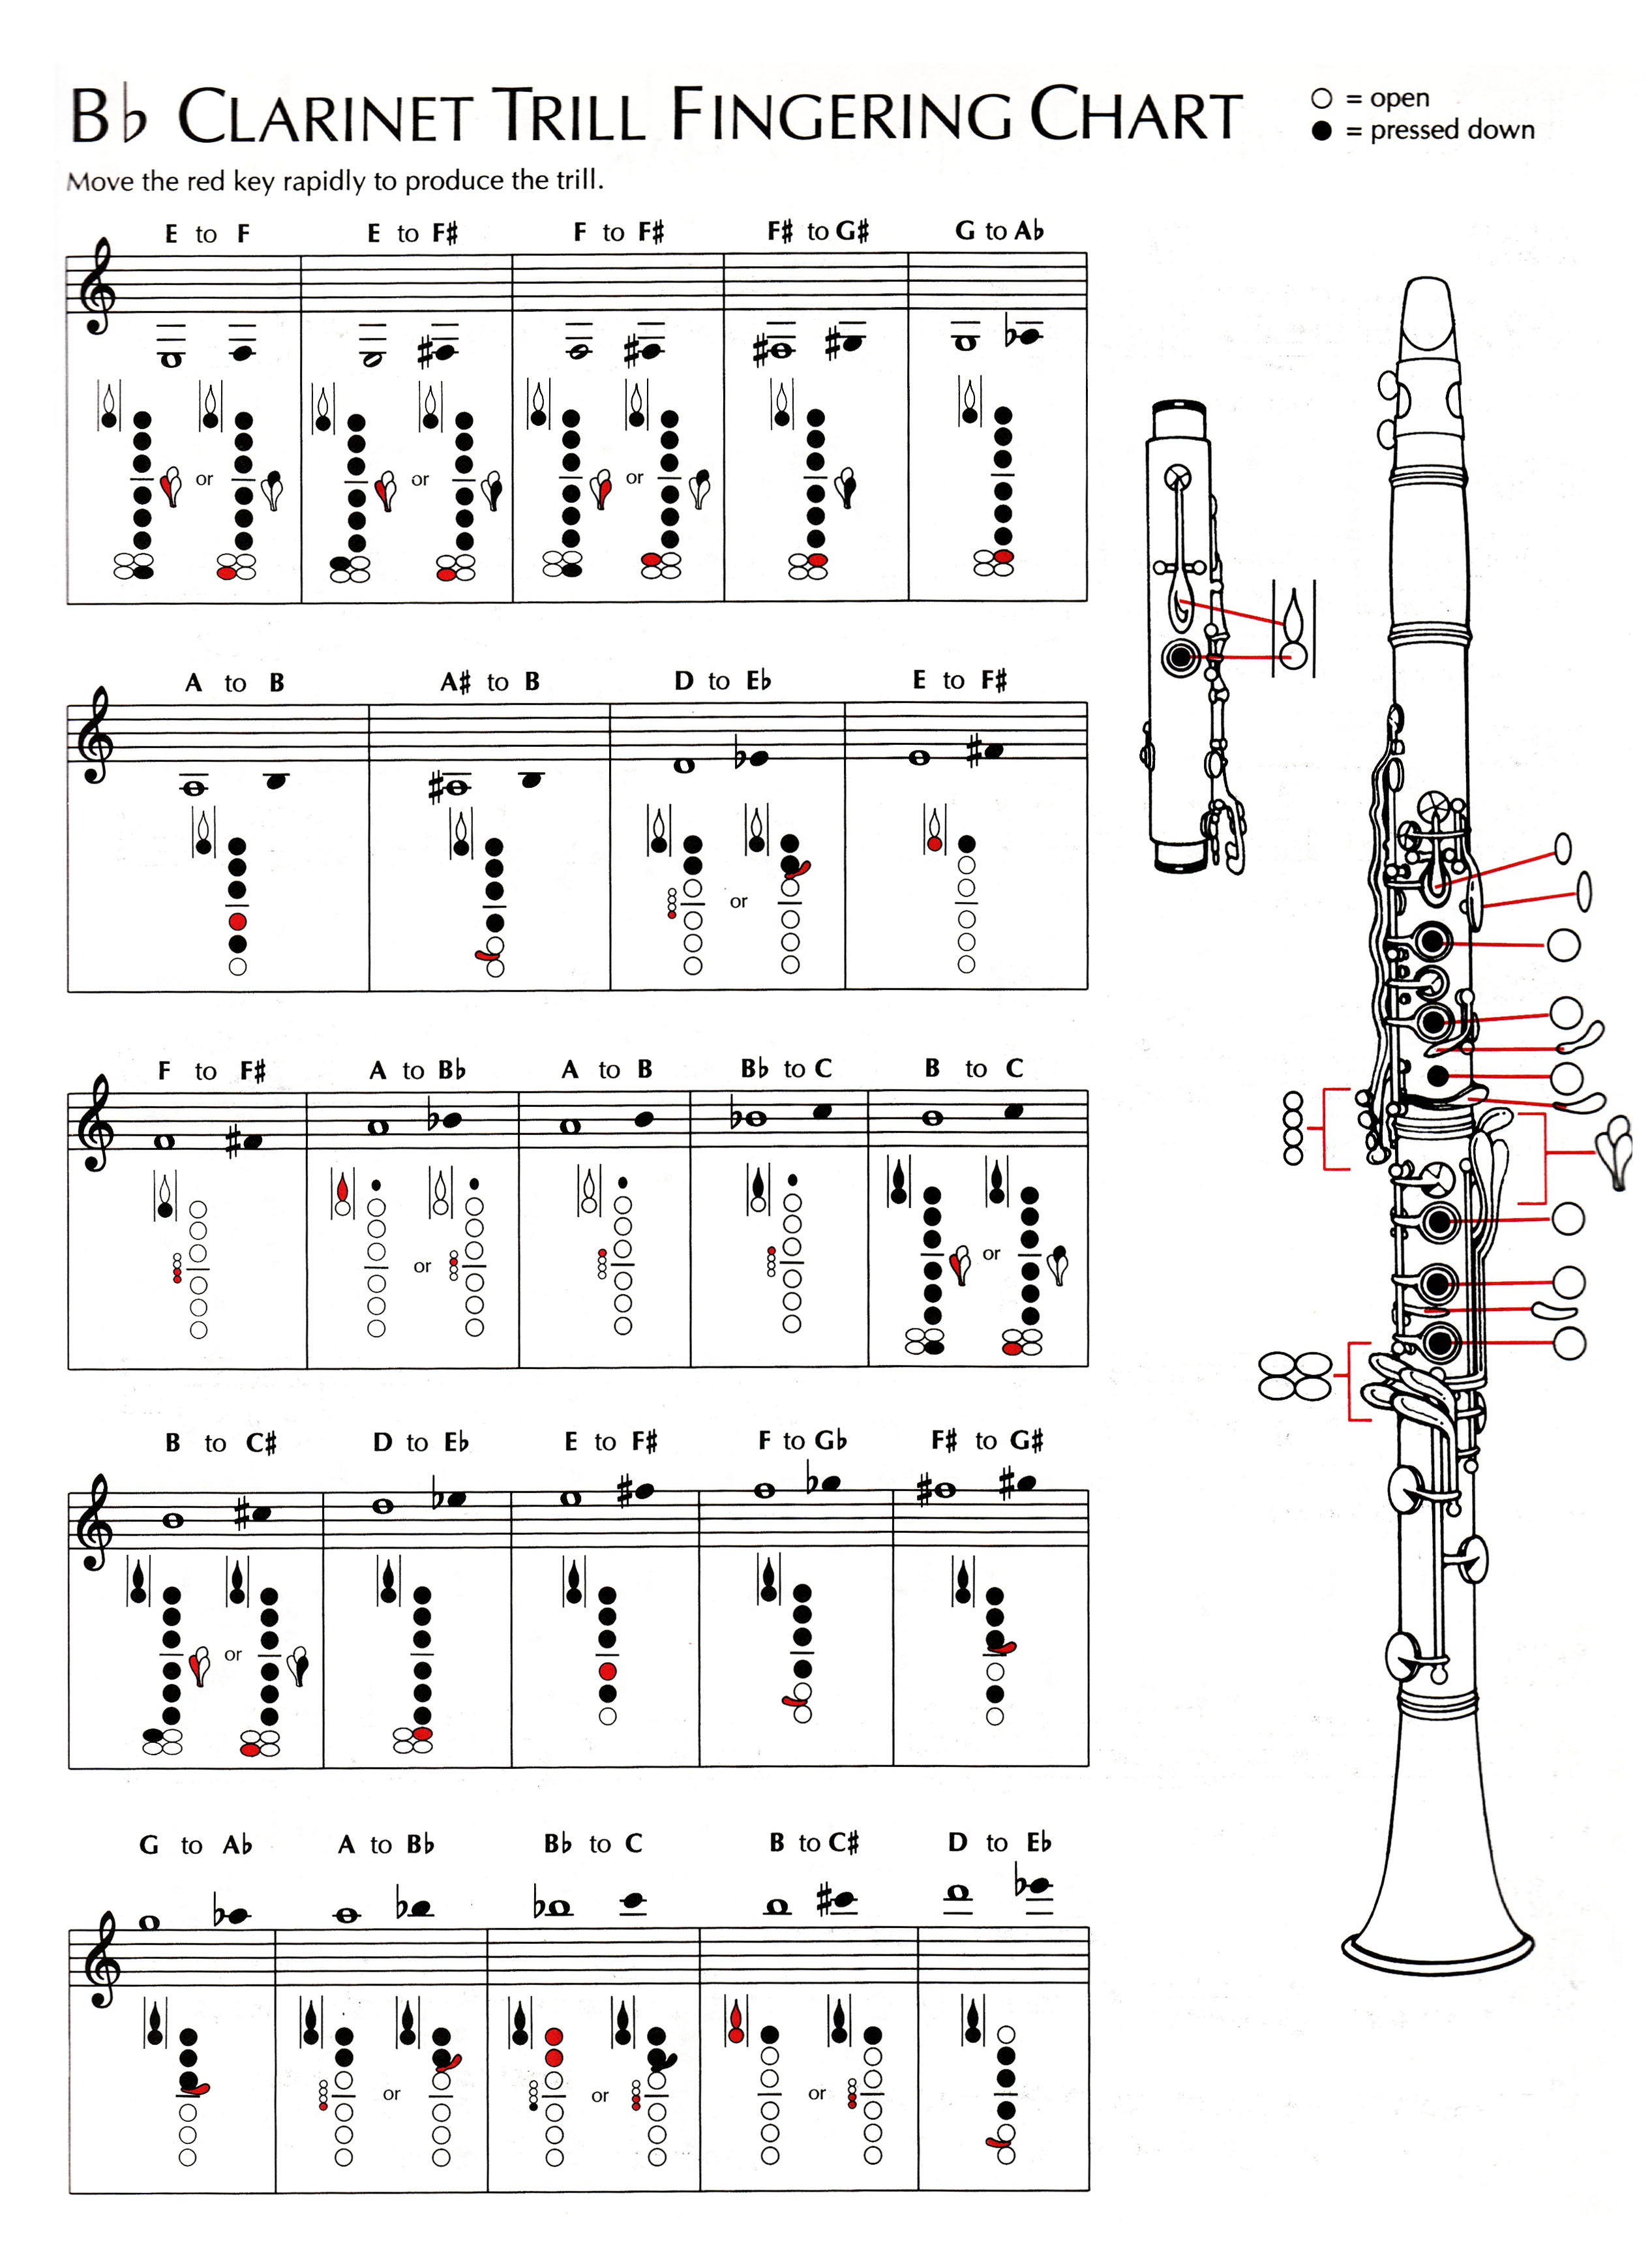 E Flat Clarinet Finger Chart http://www.rrcs.org/Instrument%20Resources.aspx